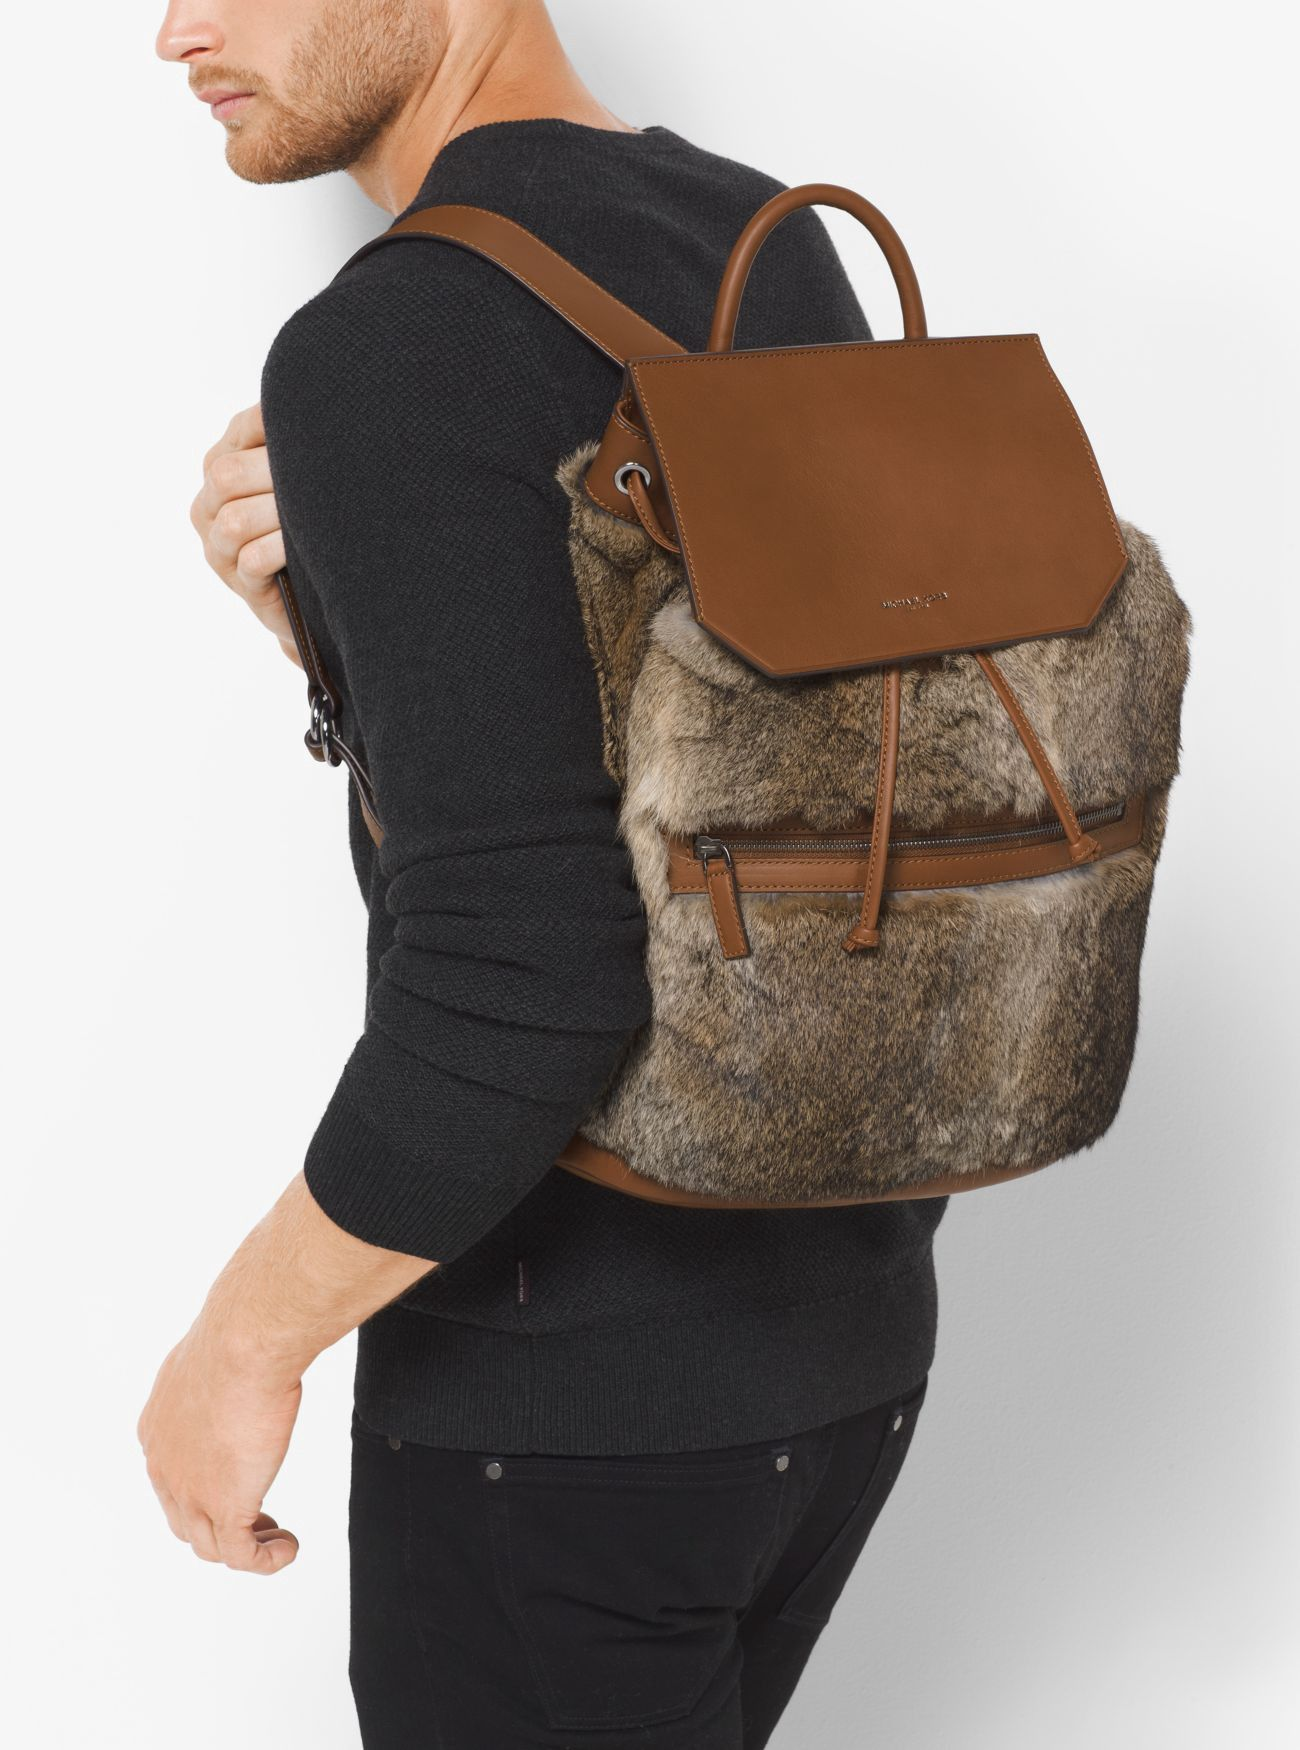 a2cebf05da99 ... sweden michael kors kirk fur and leather backpack. michaelkors bags fur  backpacks d99f5 c302c